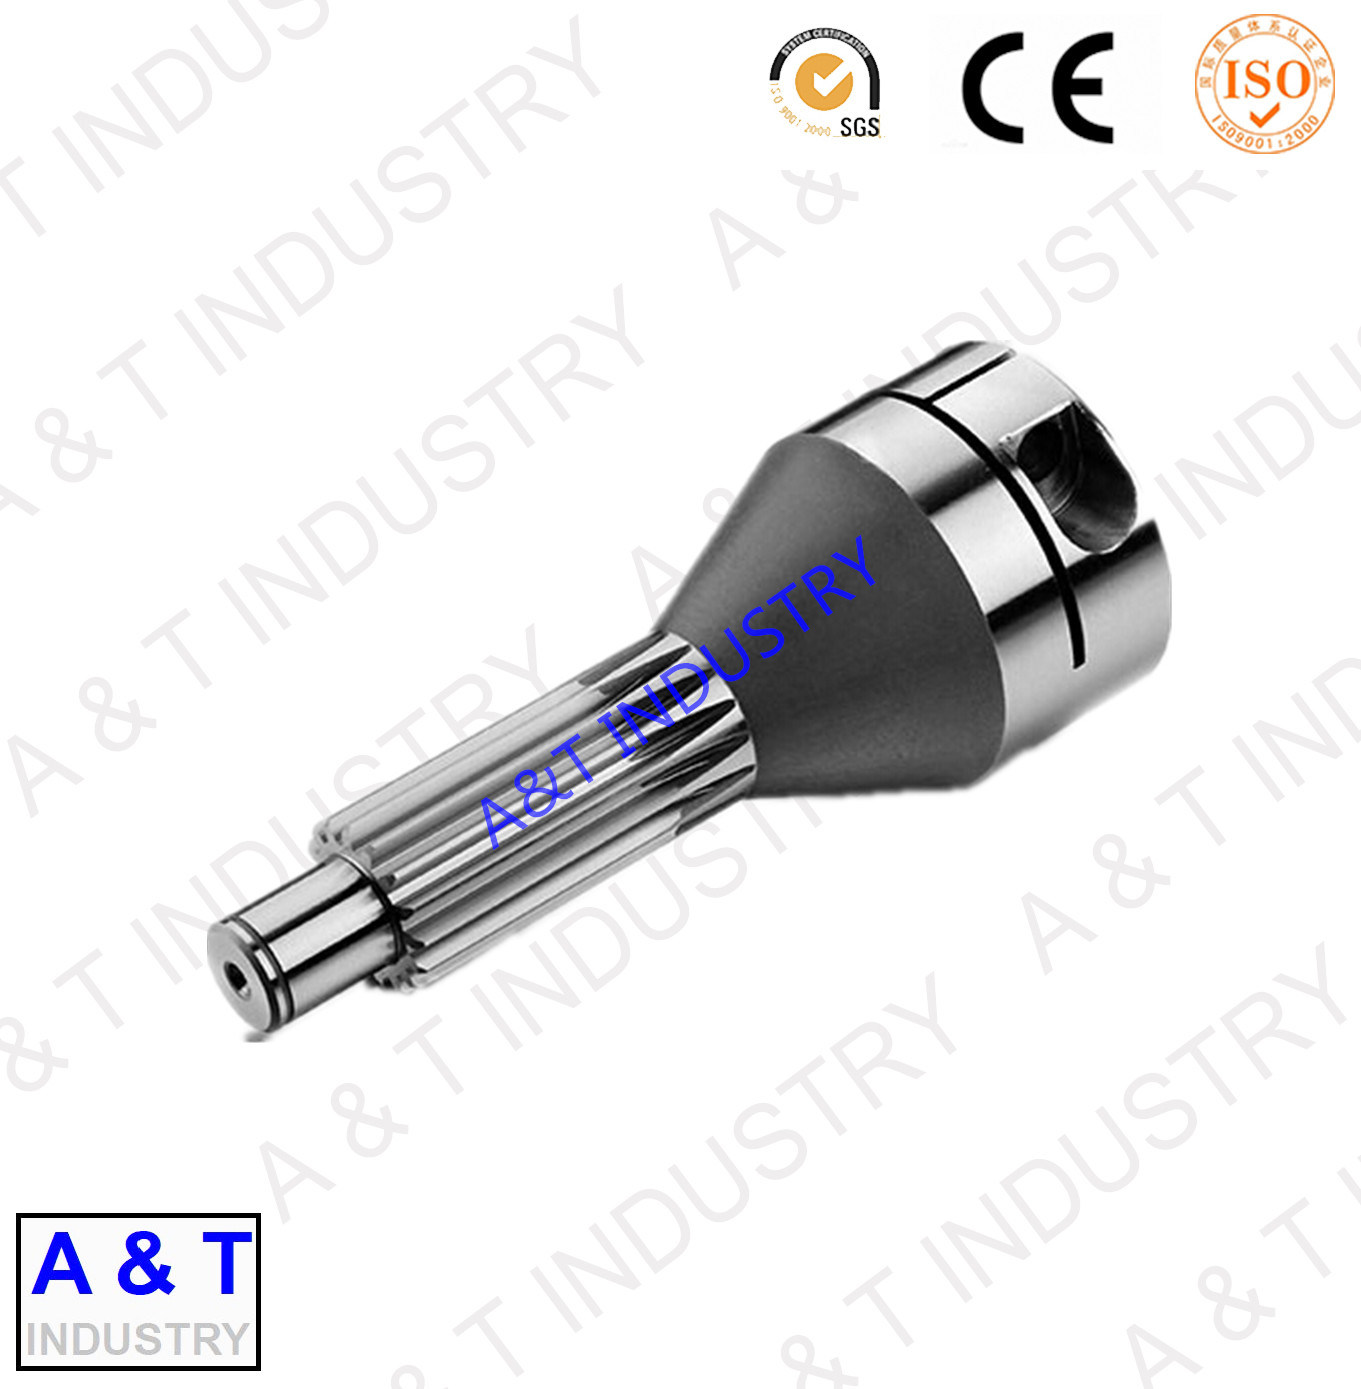 ISO 9001 Certificated Factory OEM Precision Steel Gear Shaft